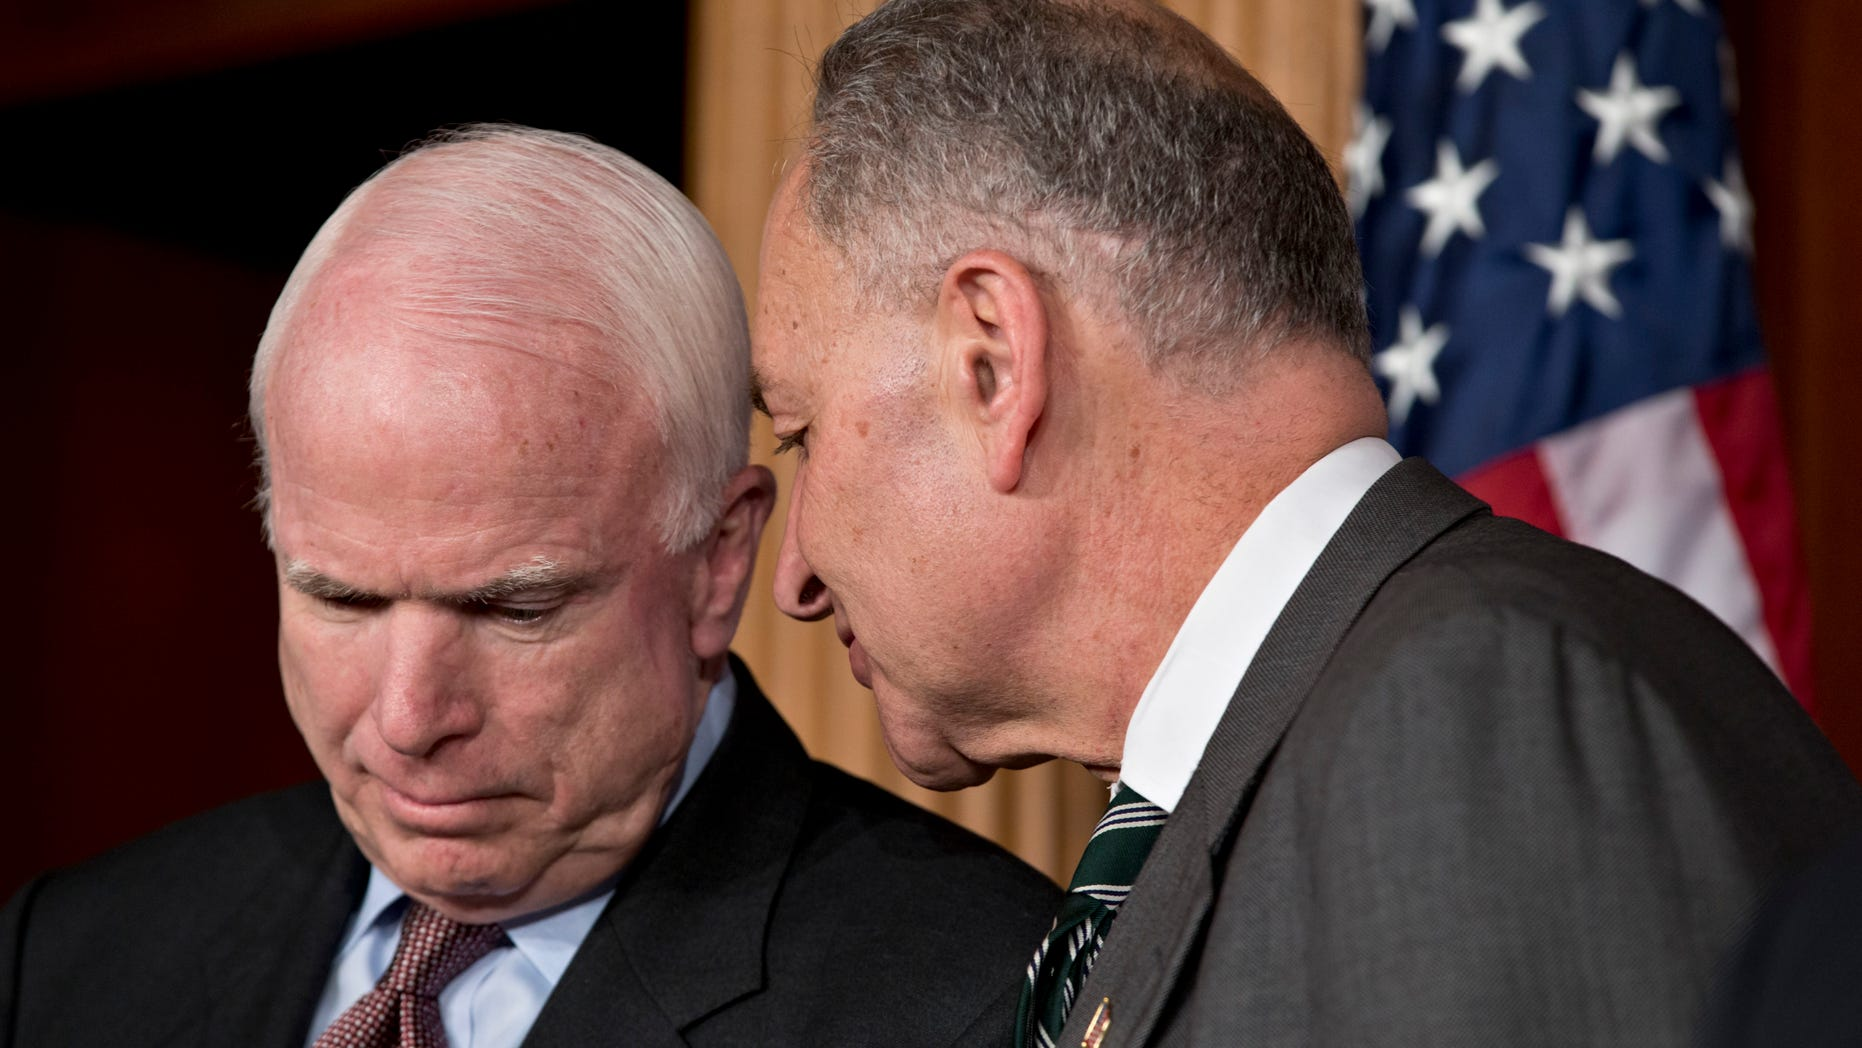 FILE:  Jan. 28, 2013: Sens. John McCain, R-Ariz., left, and Charles Schumer, D-N.Y., part of a bipartisan group of senators working on immigration reform, on Capitol Hill, in Washington, D.C.